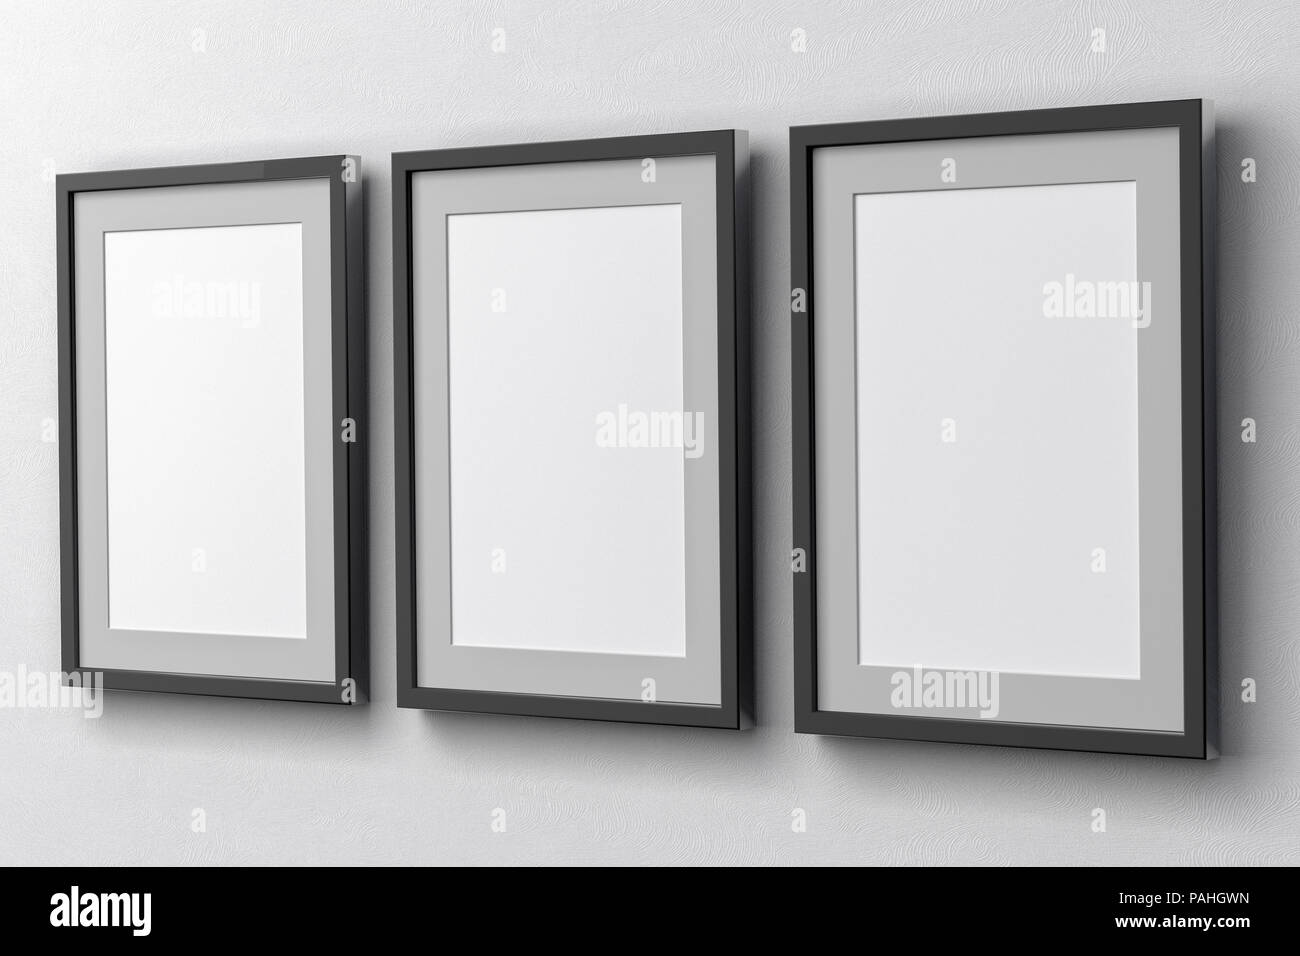 6f9fe4214b8 Blank three vertical posters on the white wall with dark frame and clipping  path around poster. 3d illustration